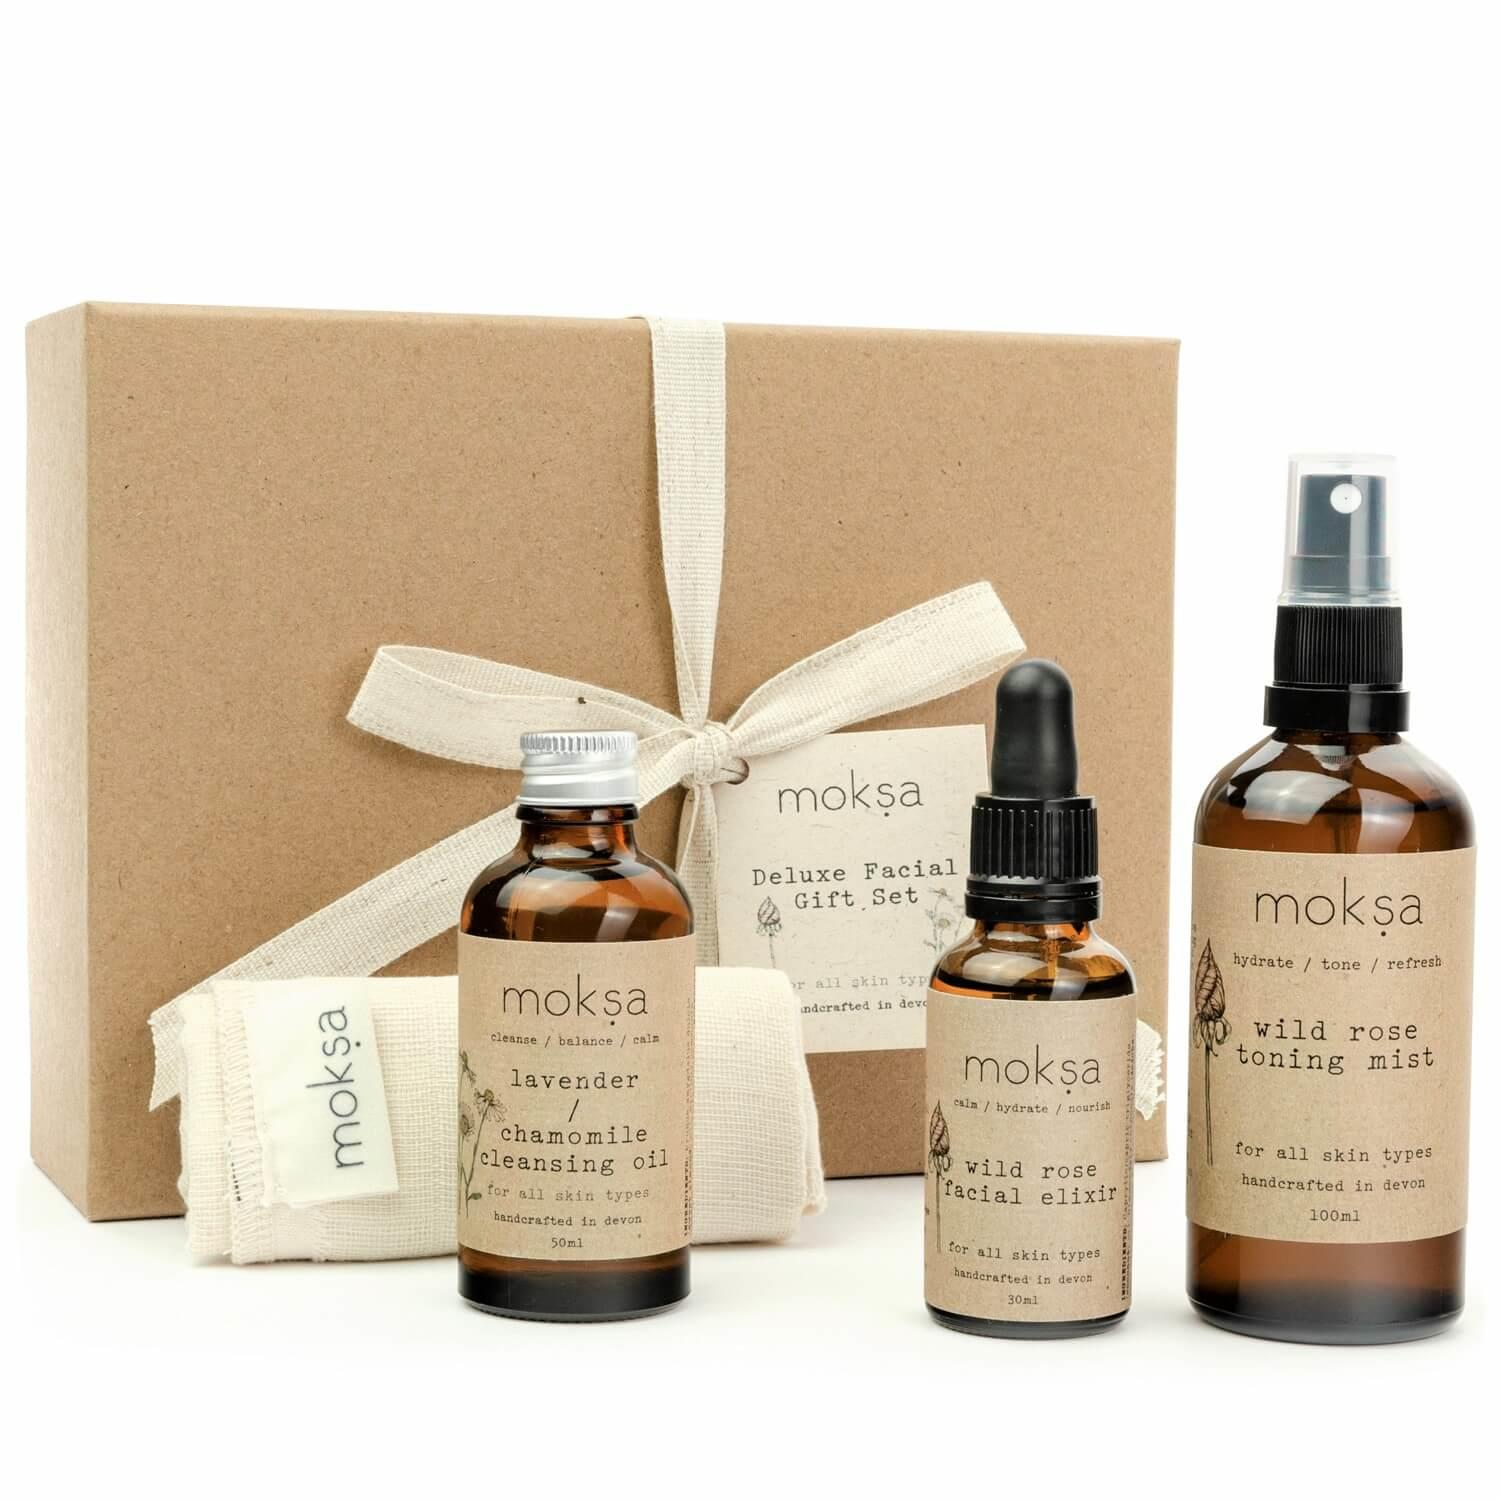 Deluxe Facial Gift Set - Inside